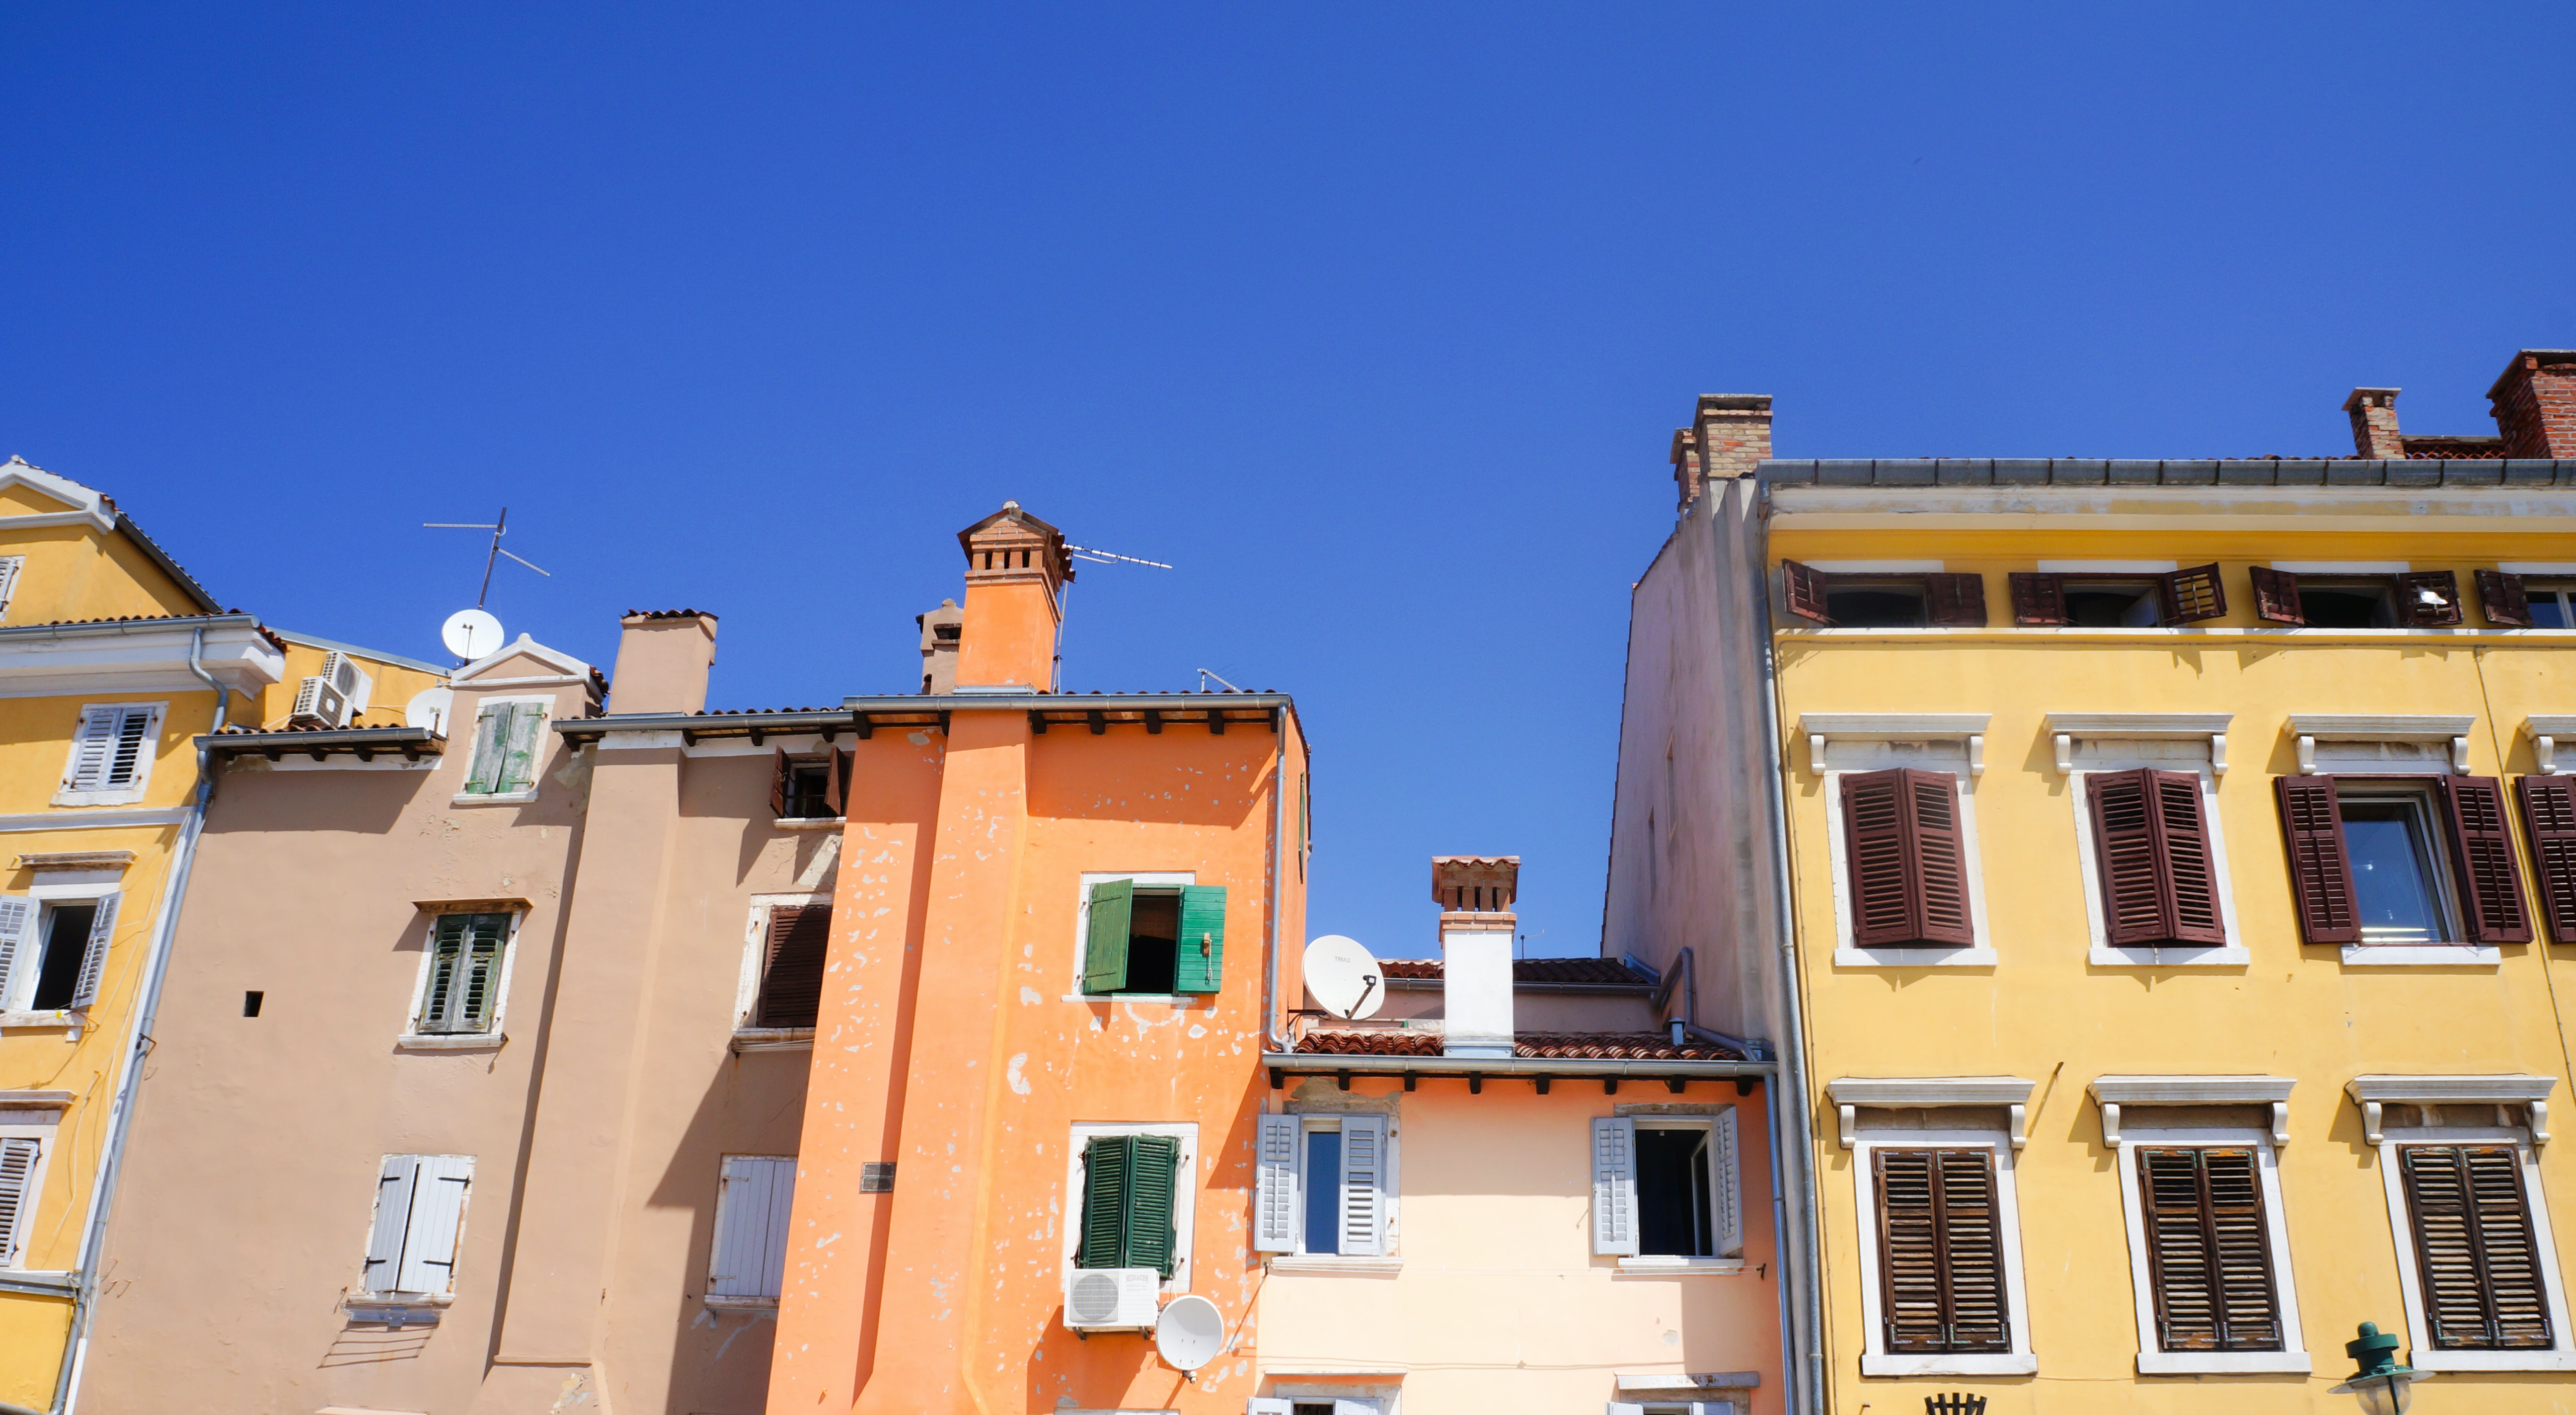 yellow and orange concrete buildings under blue sky during daytime